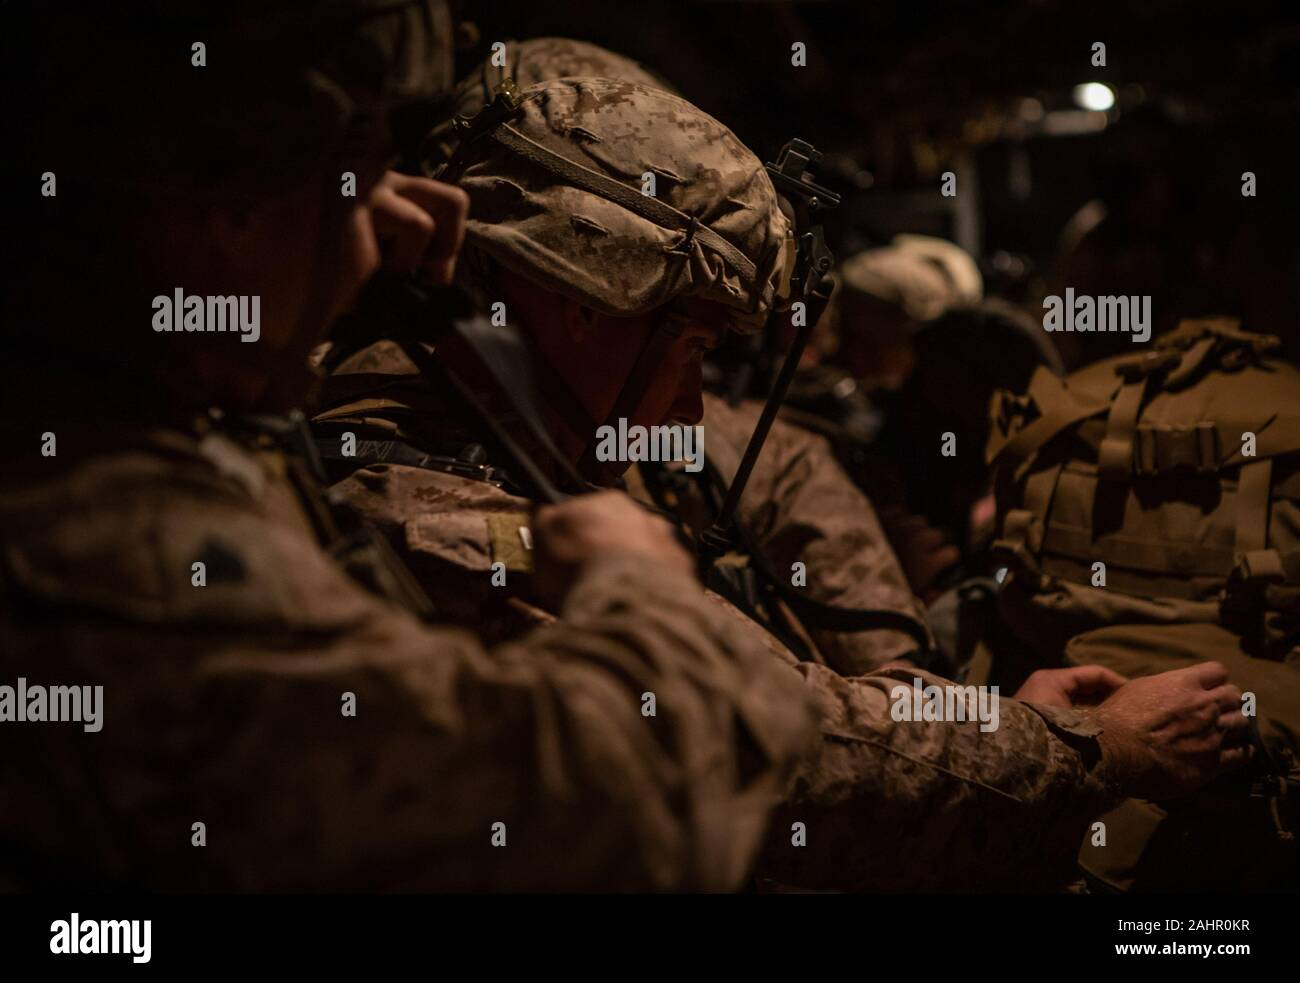 Kuwait. 31st Dec, 2019. U.S. Marines assigned to Special Purpose Marine Air-Ground Task Force-Crisis Response-Central Command (SPMAFTF-CR-CC) 19.2, prepare to deploy from Kuwait in support of a crisis response mission in Baghdad, Iraq, on December 31, 2019. The SPMAGTF-CR-CC is designed to move with speed and precision to support operations throughout the Middle East. Photo by Sgt. Robert Gavaldon/U.S. Marine Corps/UPI Credit: UPI/Alamy Live News Stock Photo